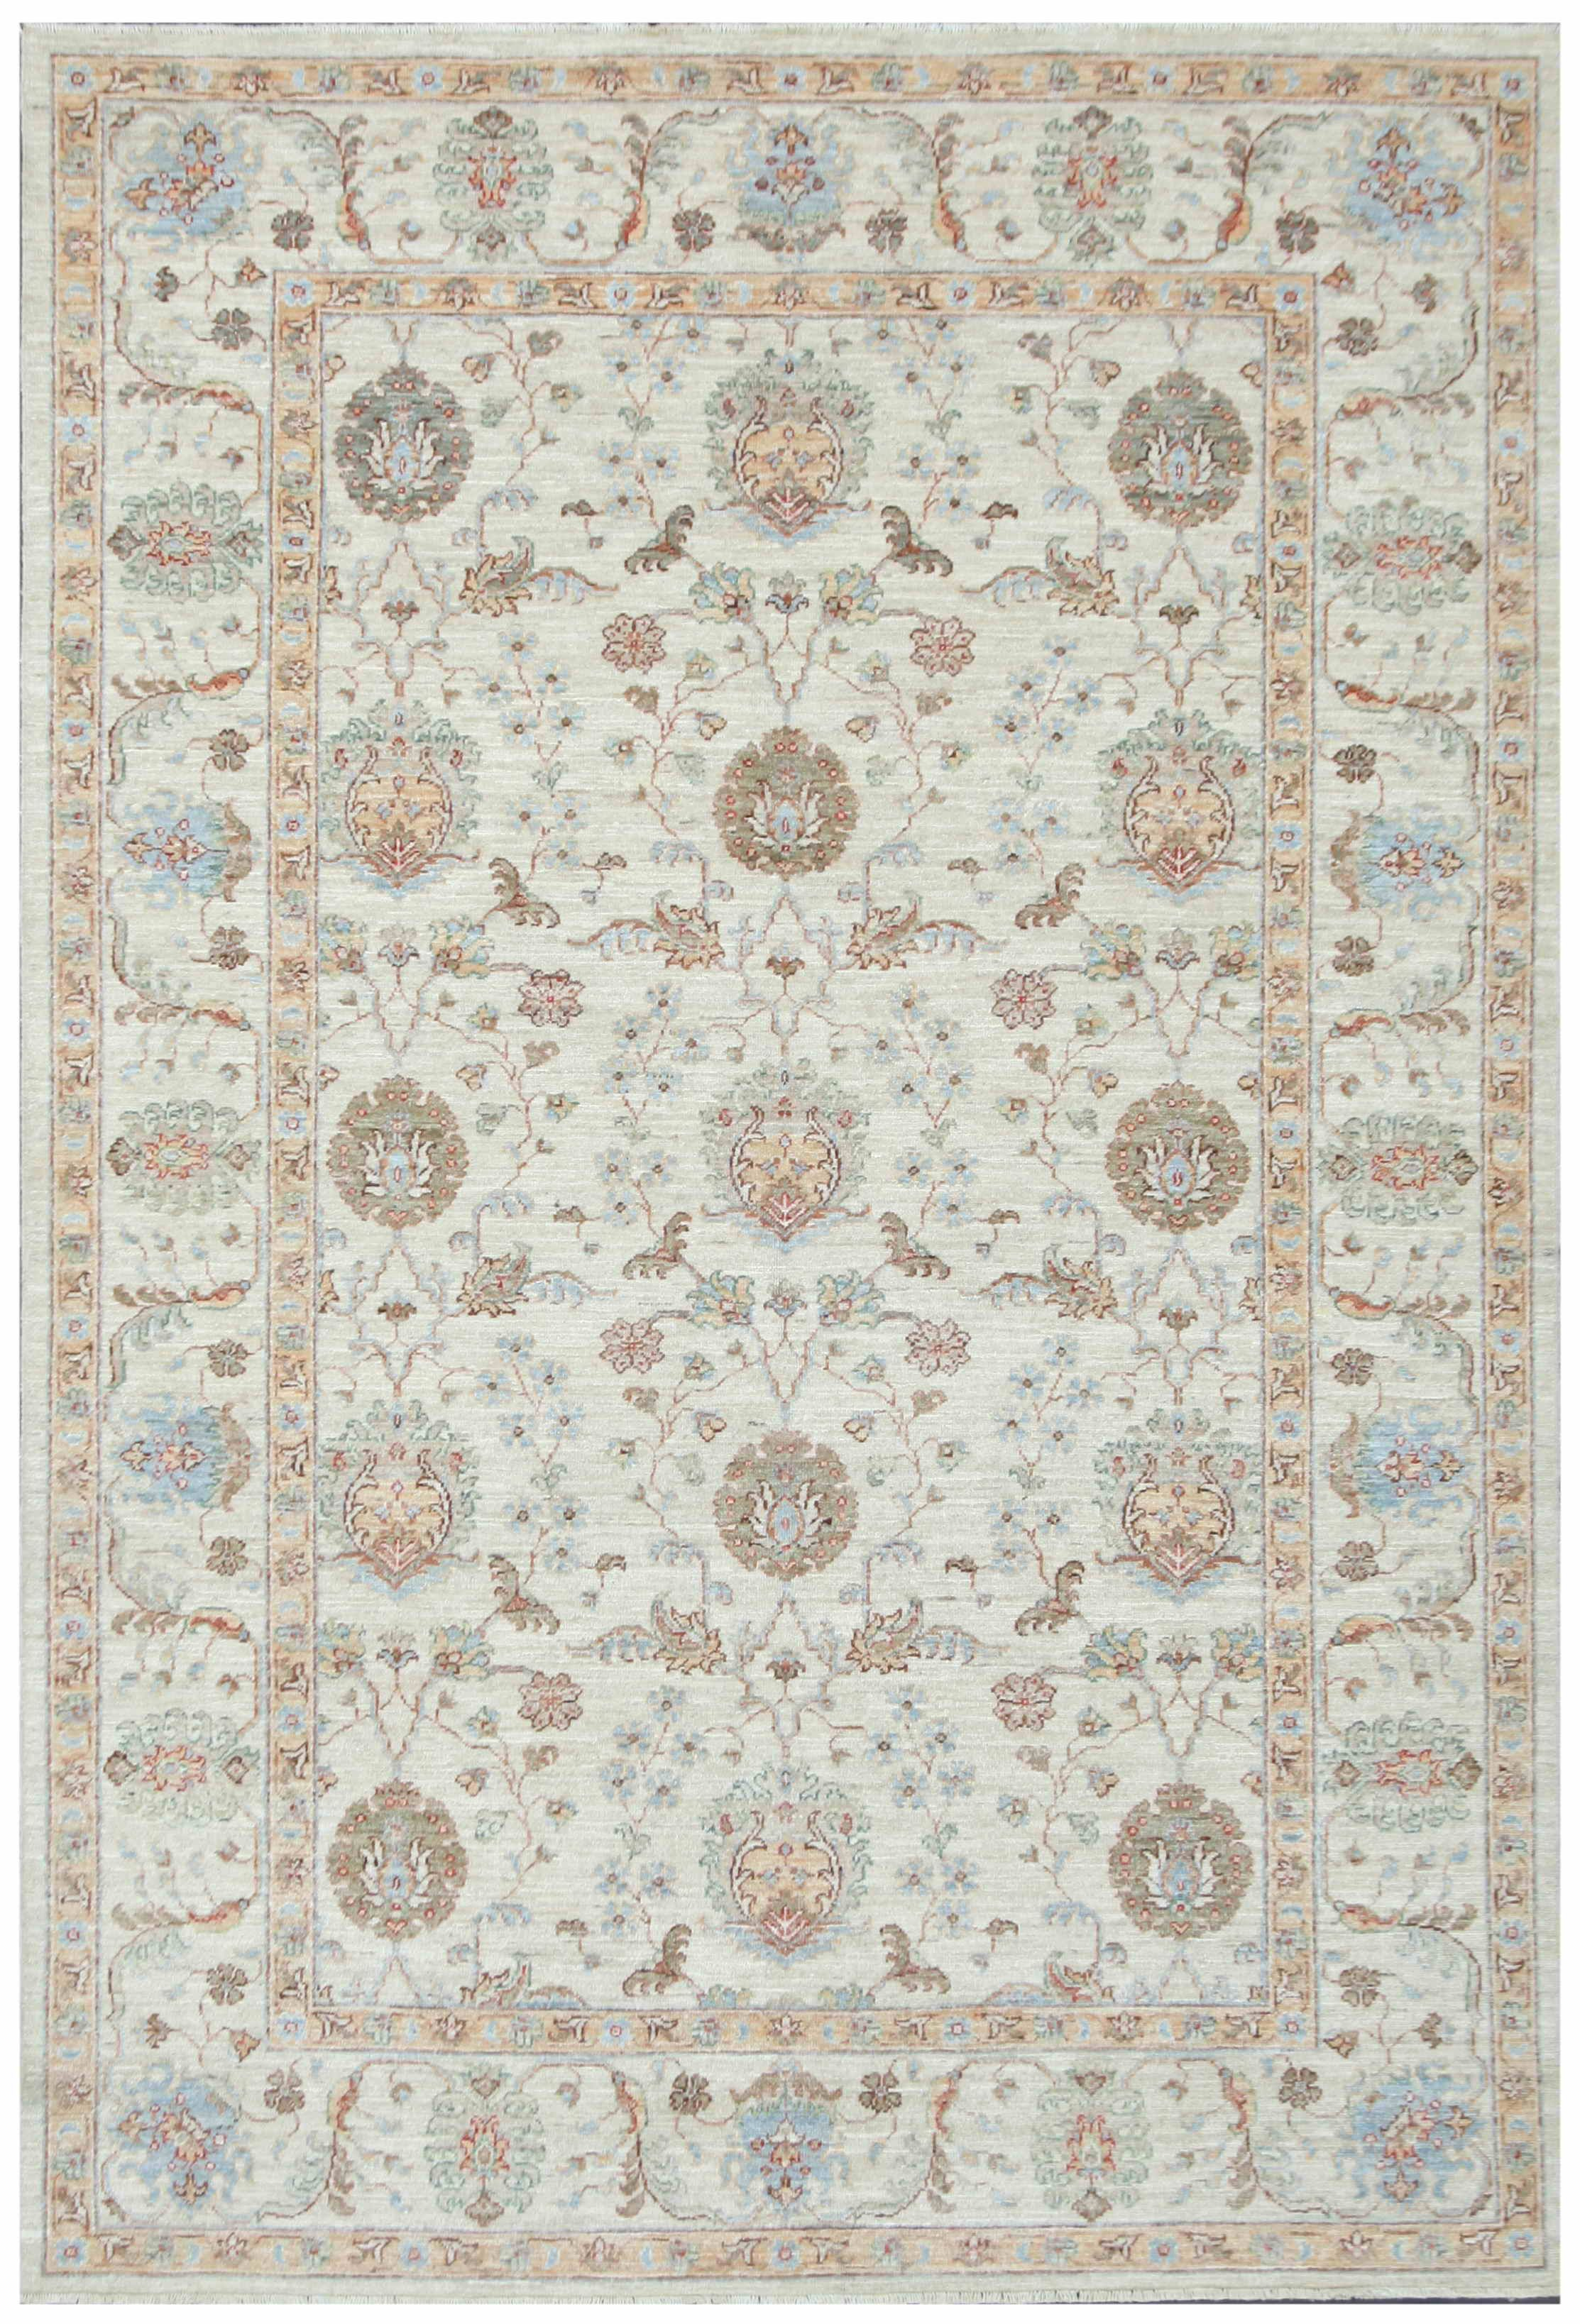 Light Colors Oriental Rugs Rug